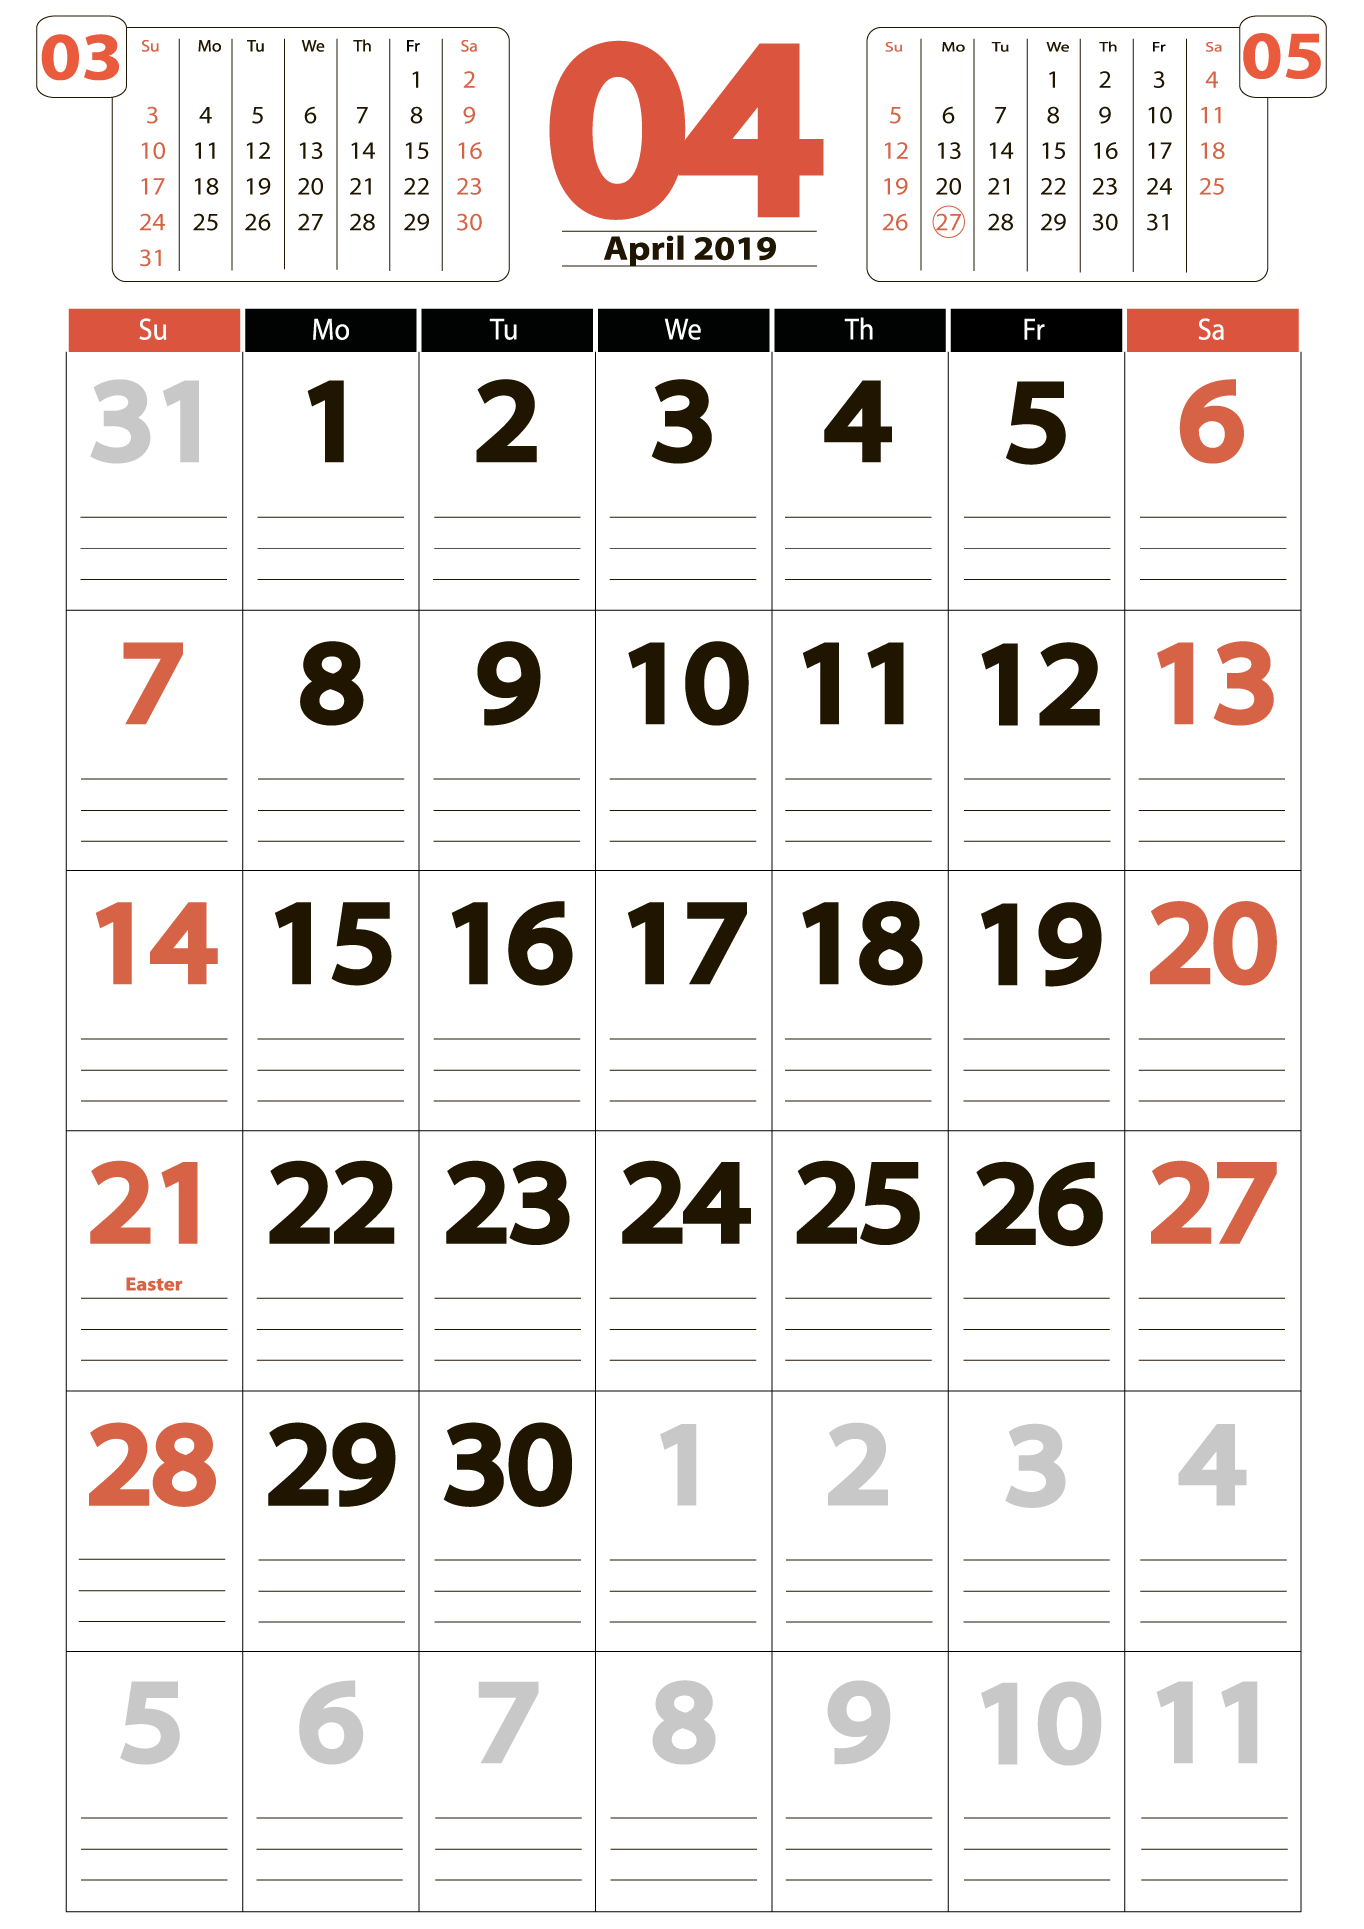 Download calendar 04 2019